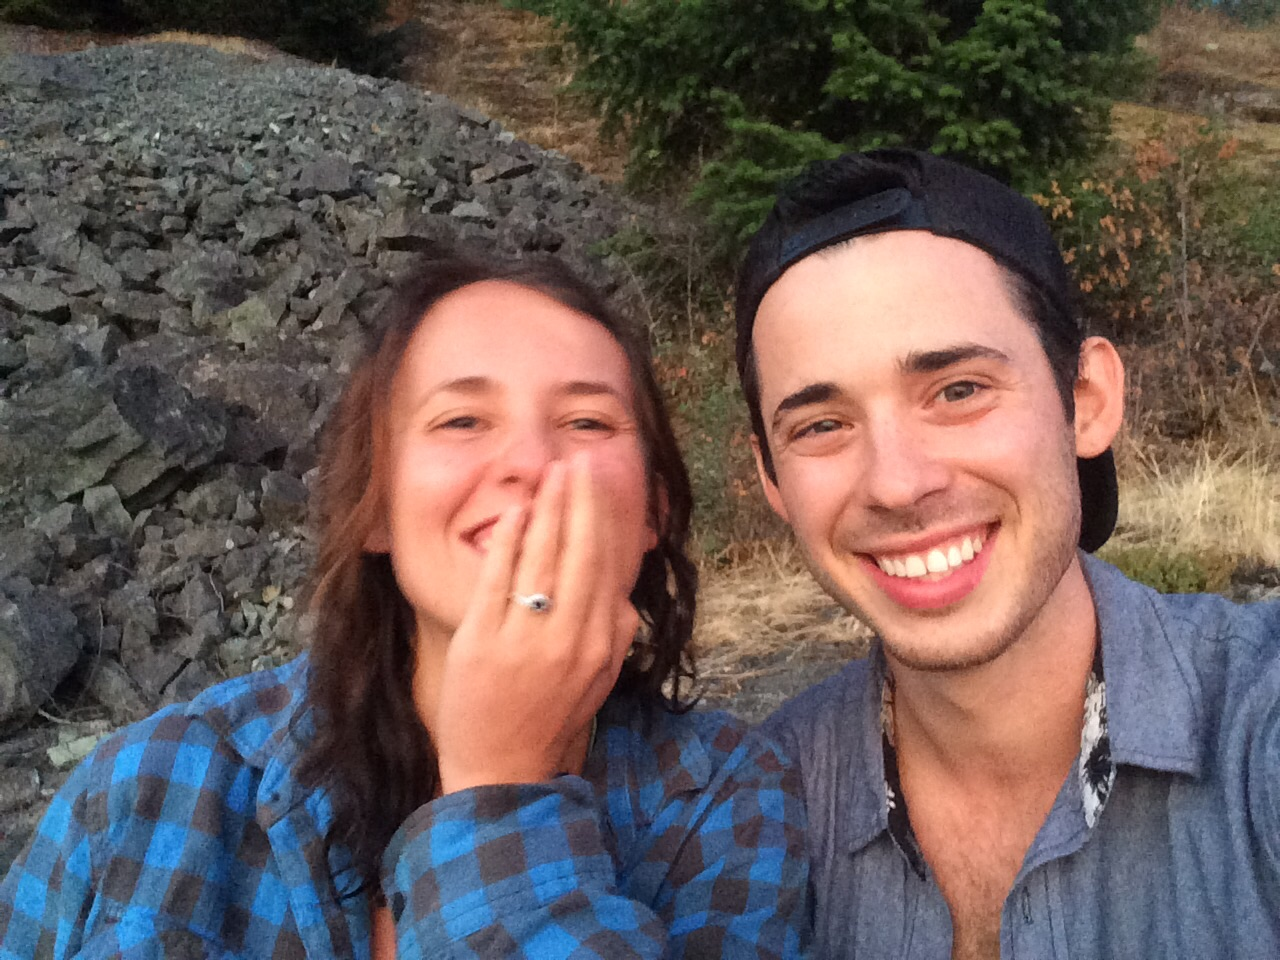 The blurriest post proposal bliss